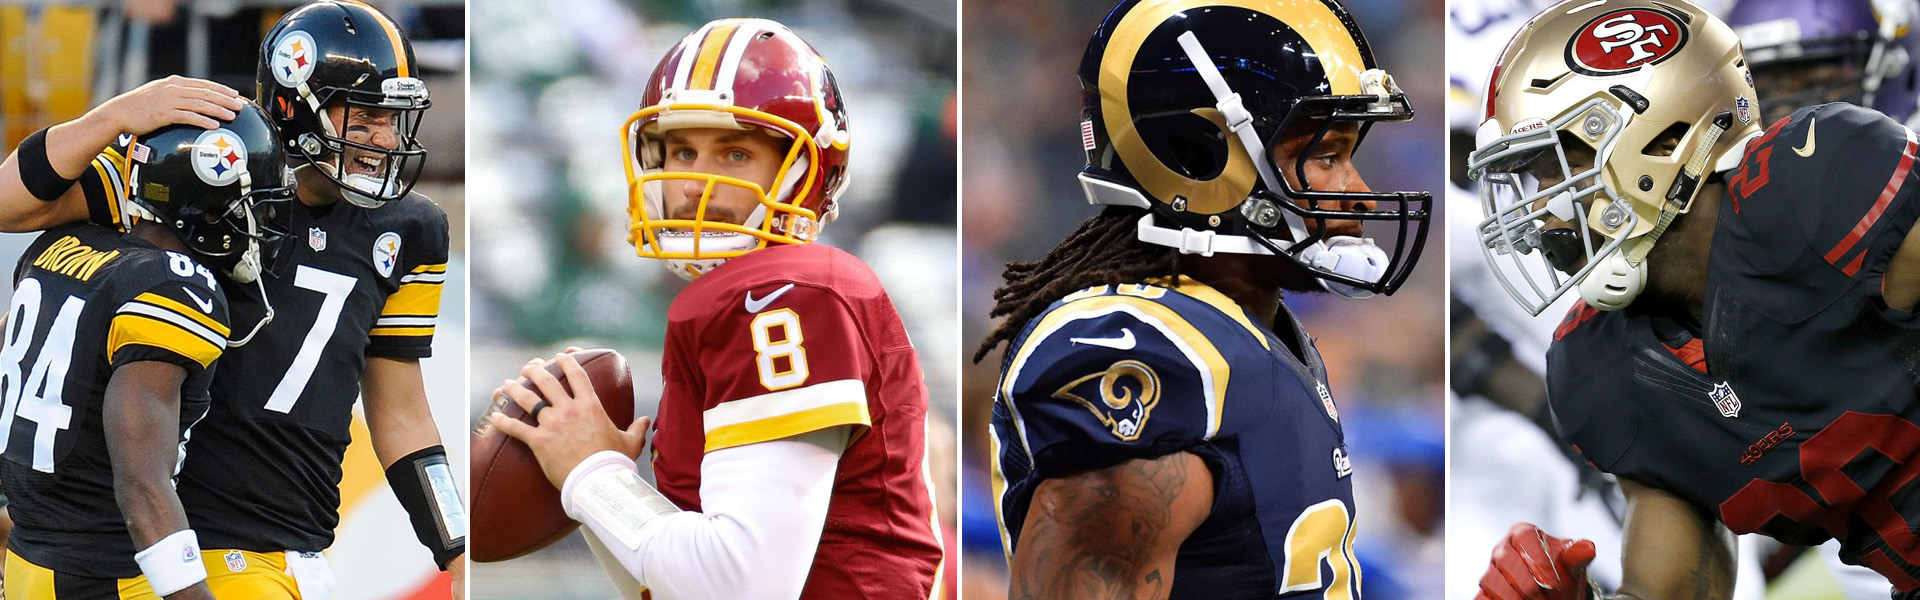 Monday Night Football Doubleheader Preview 16